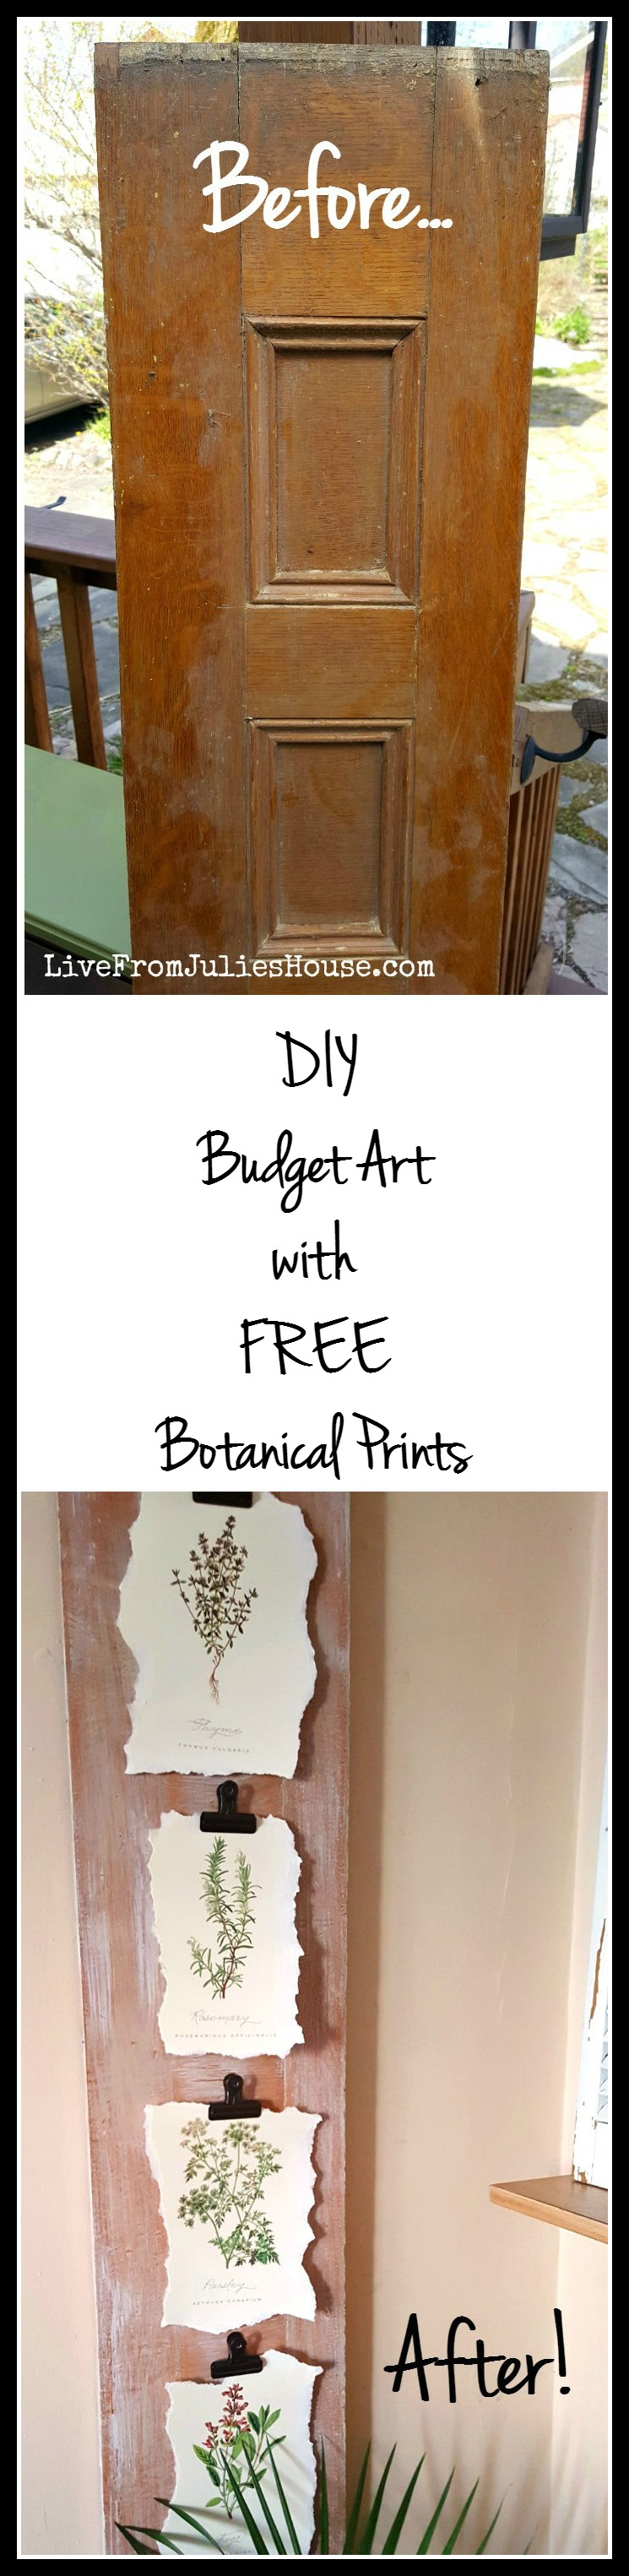 DIY Budget Art with FREE Botanical Prints - Live from Julie\'s House